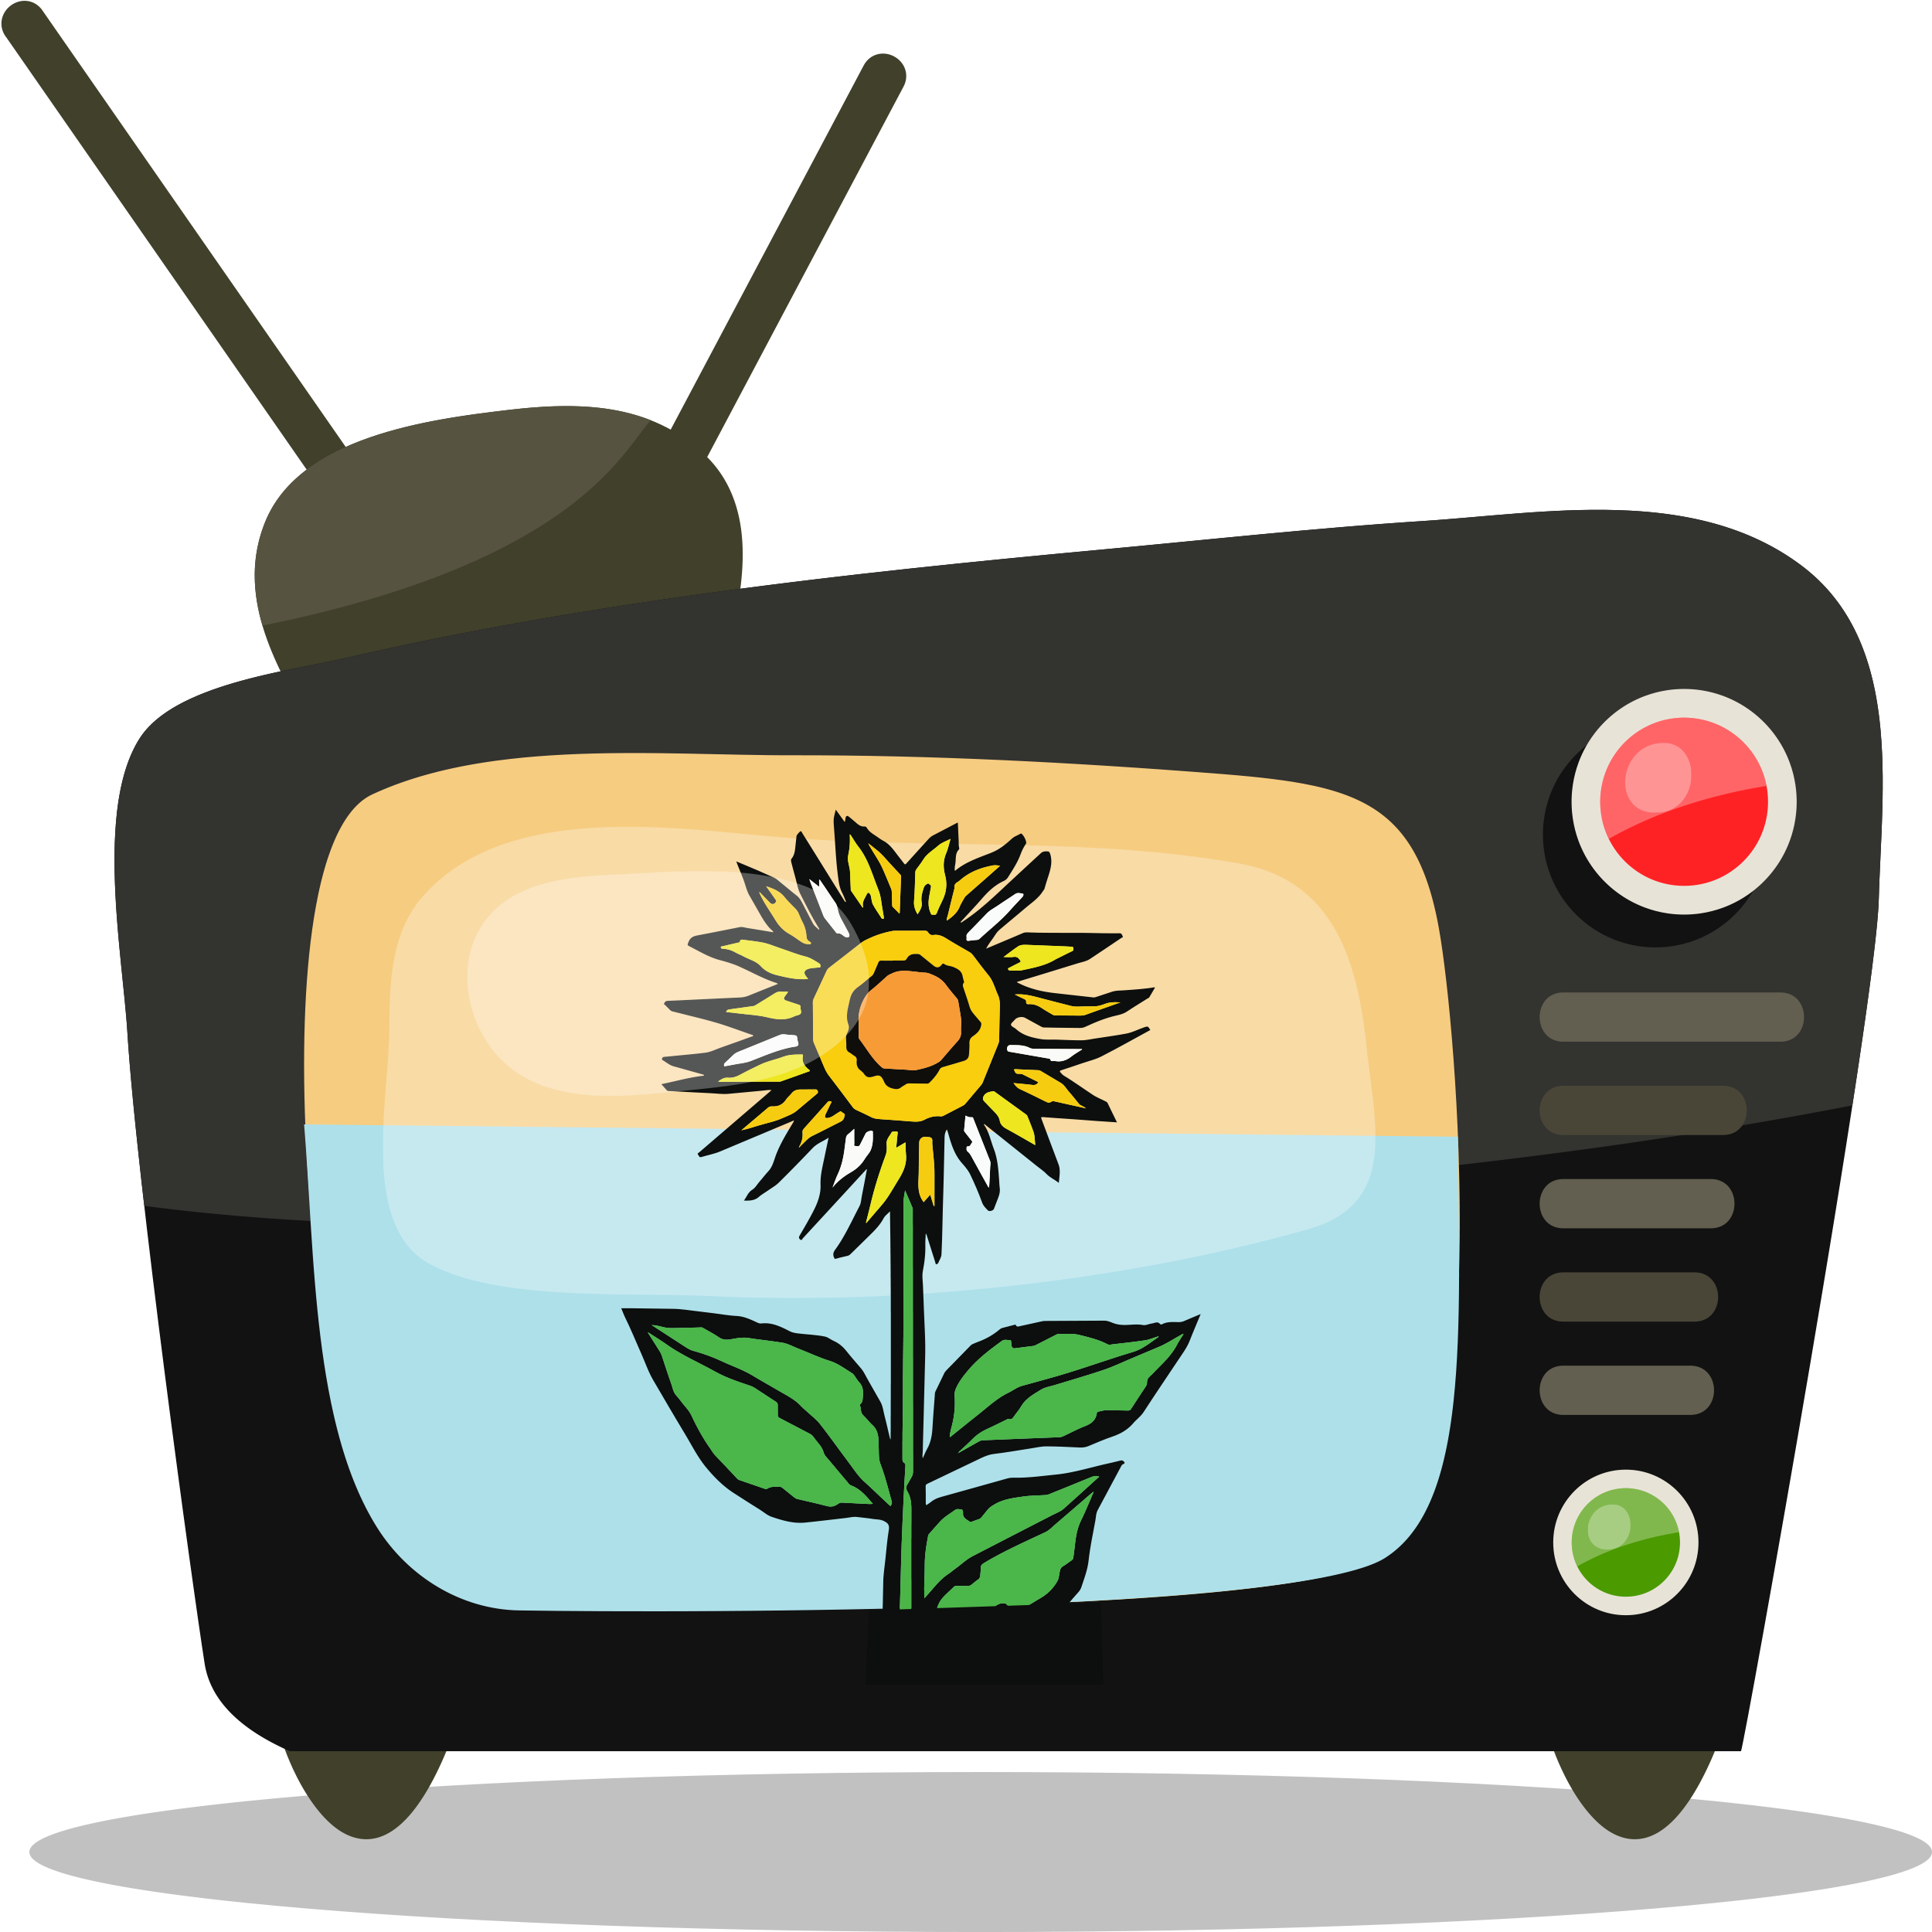 Sunflower Learning Channel